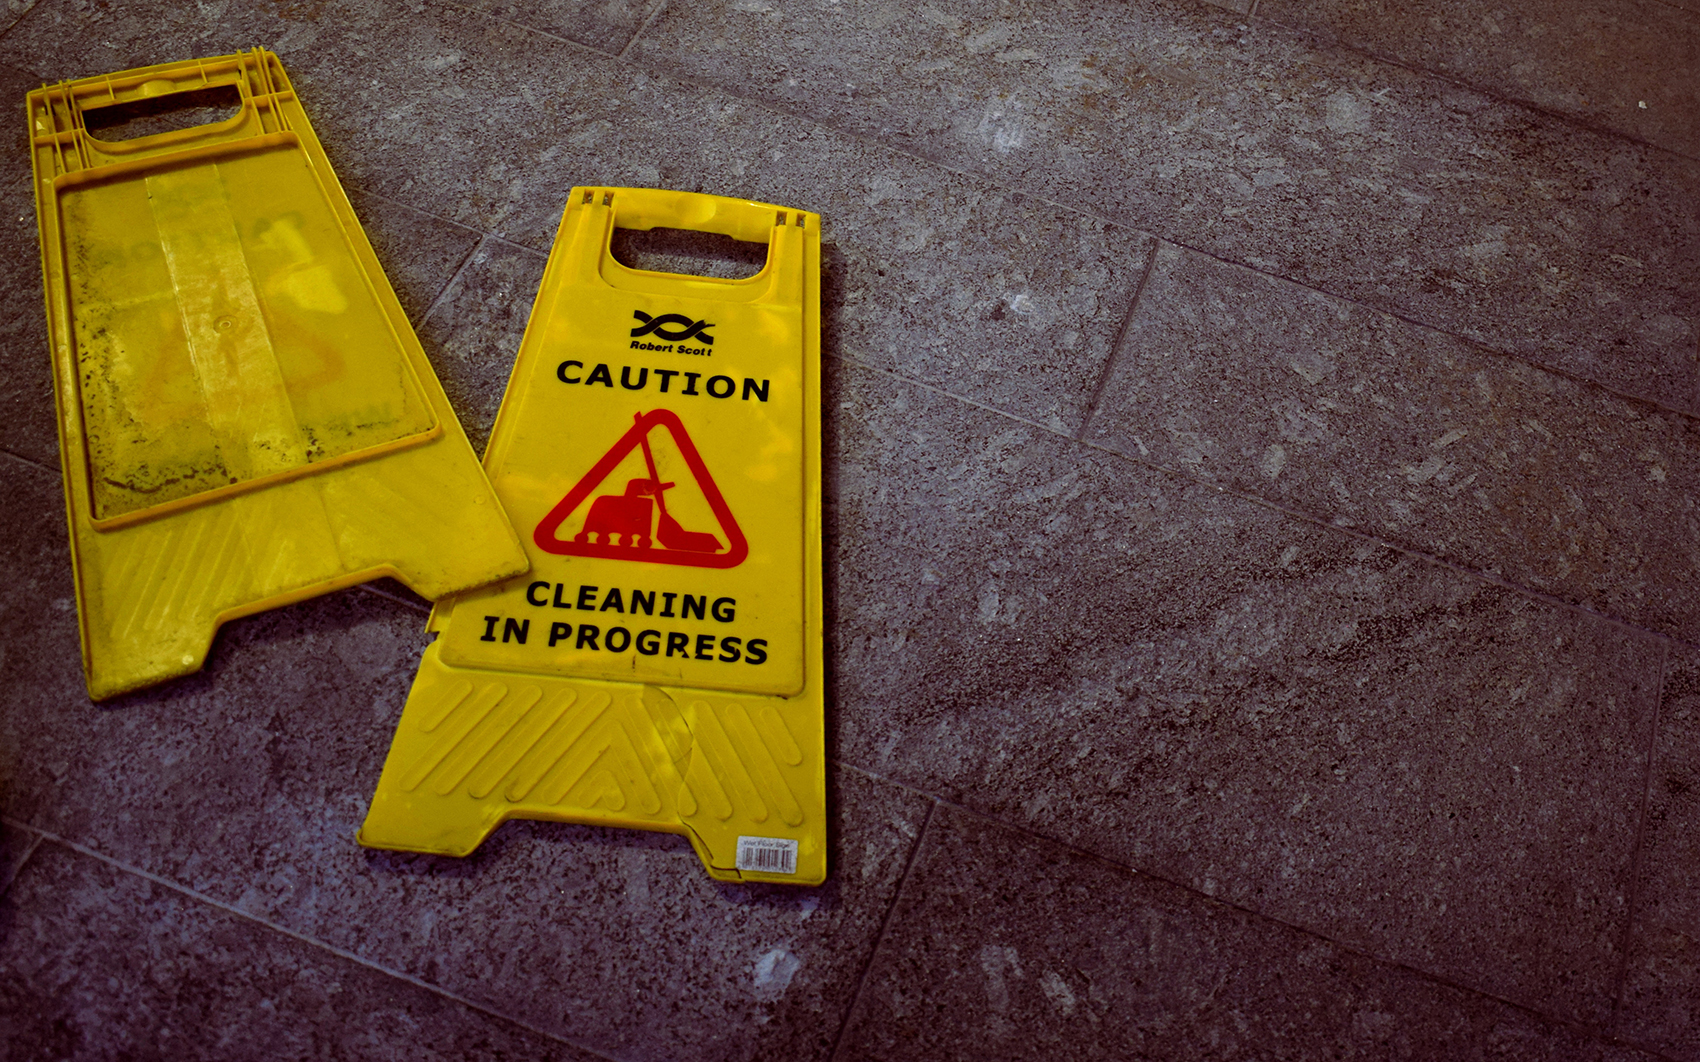 Decca janitorial services questions to ask